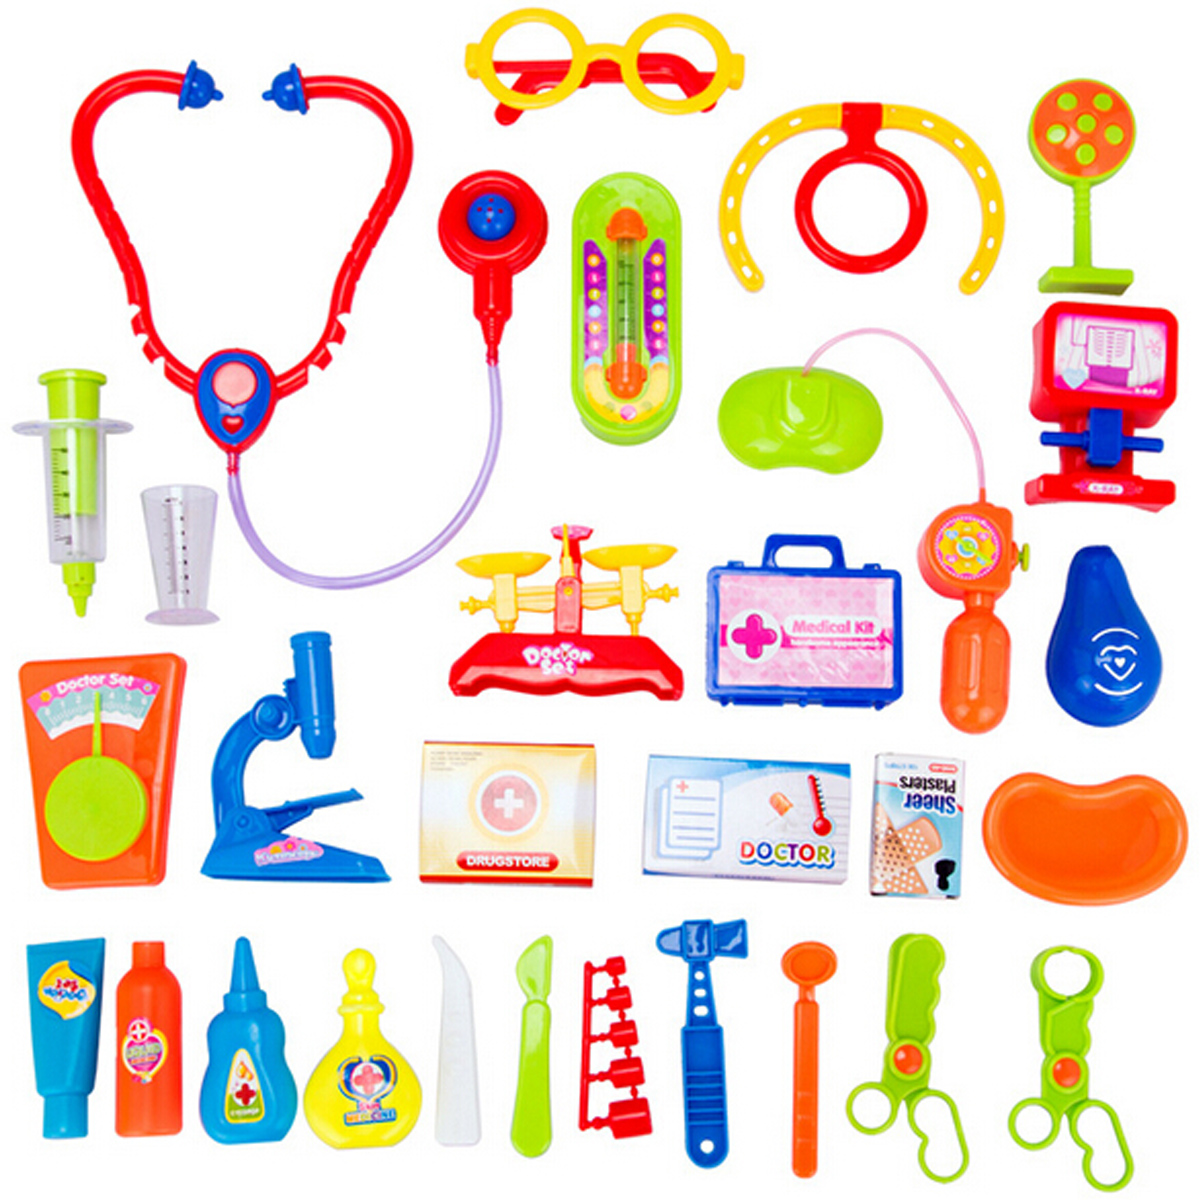 30Pcs Baby Kids Doctor Medical Playset Carry Case Kit Education Role Play Toys Suitable for boys and girls